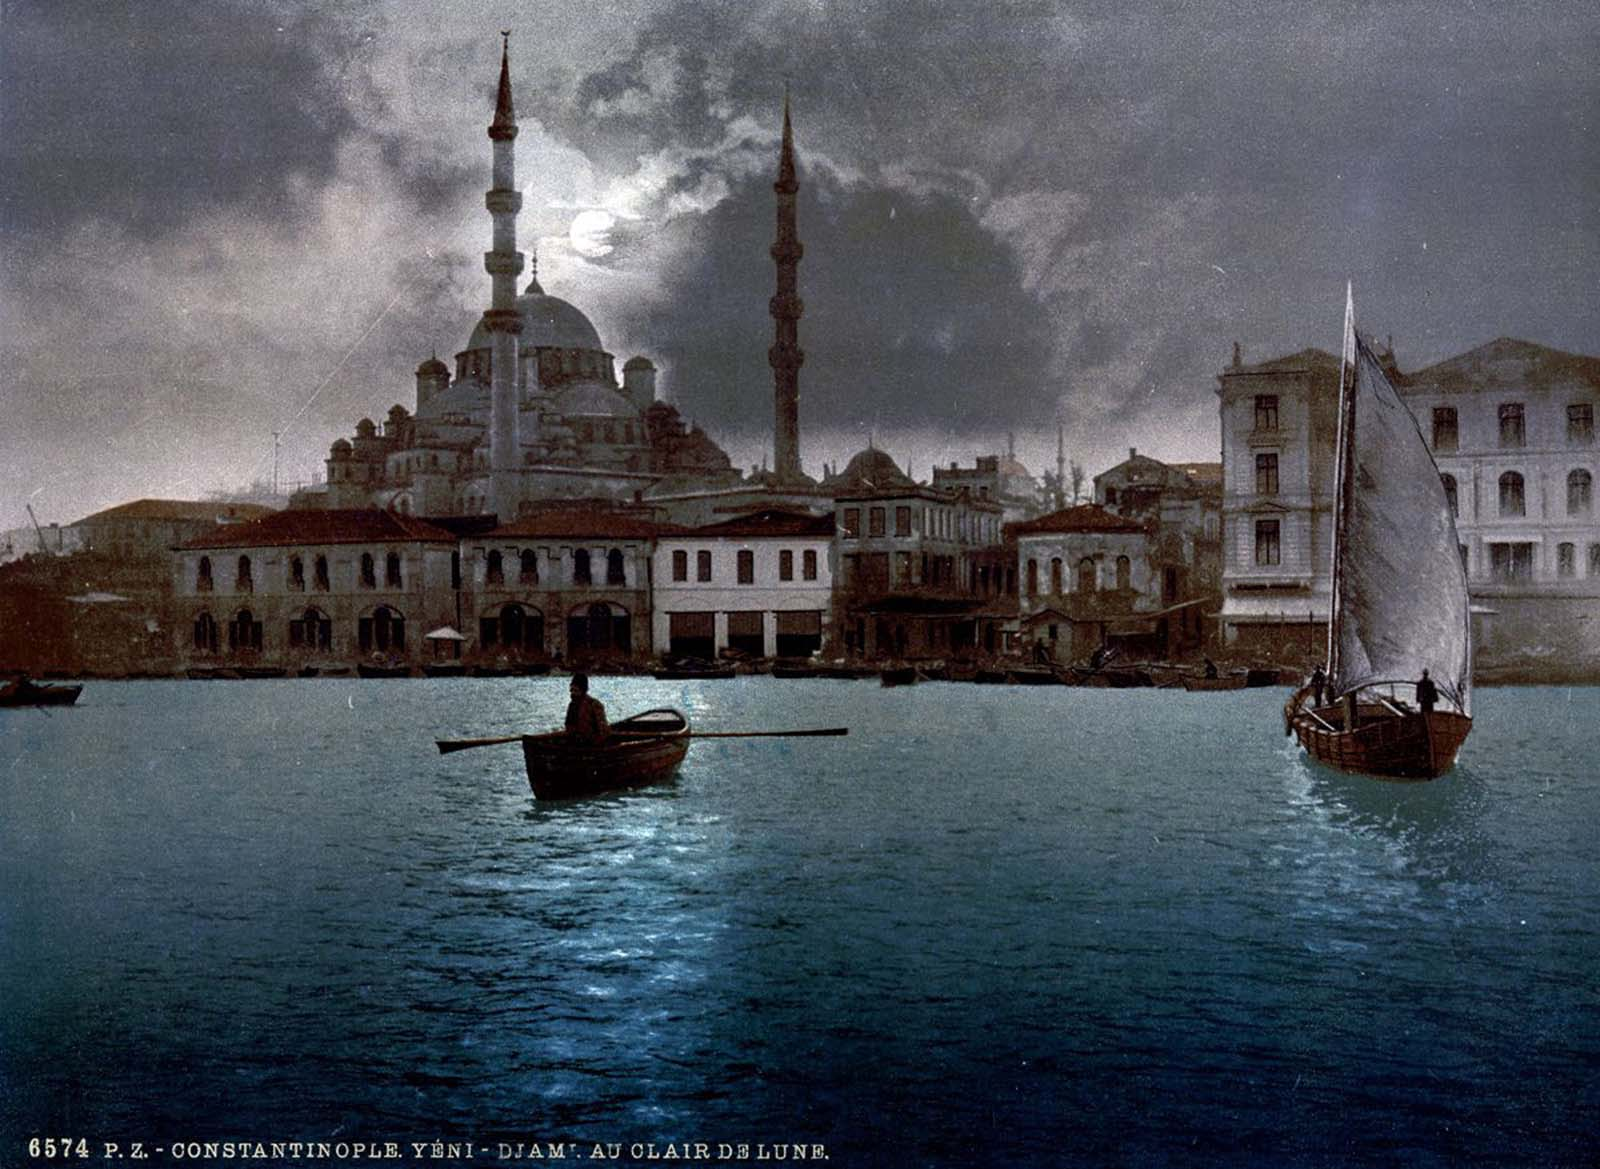 The Yeni Cami by moonlight.